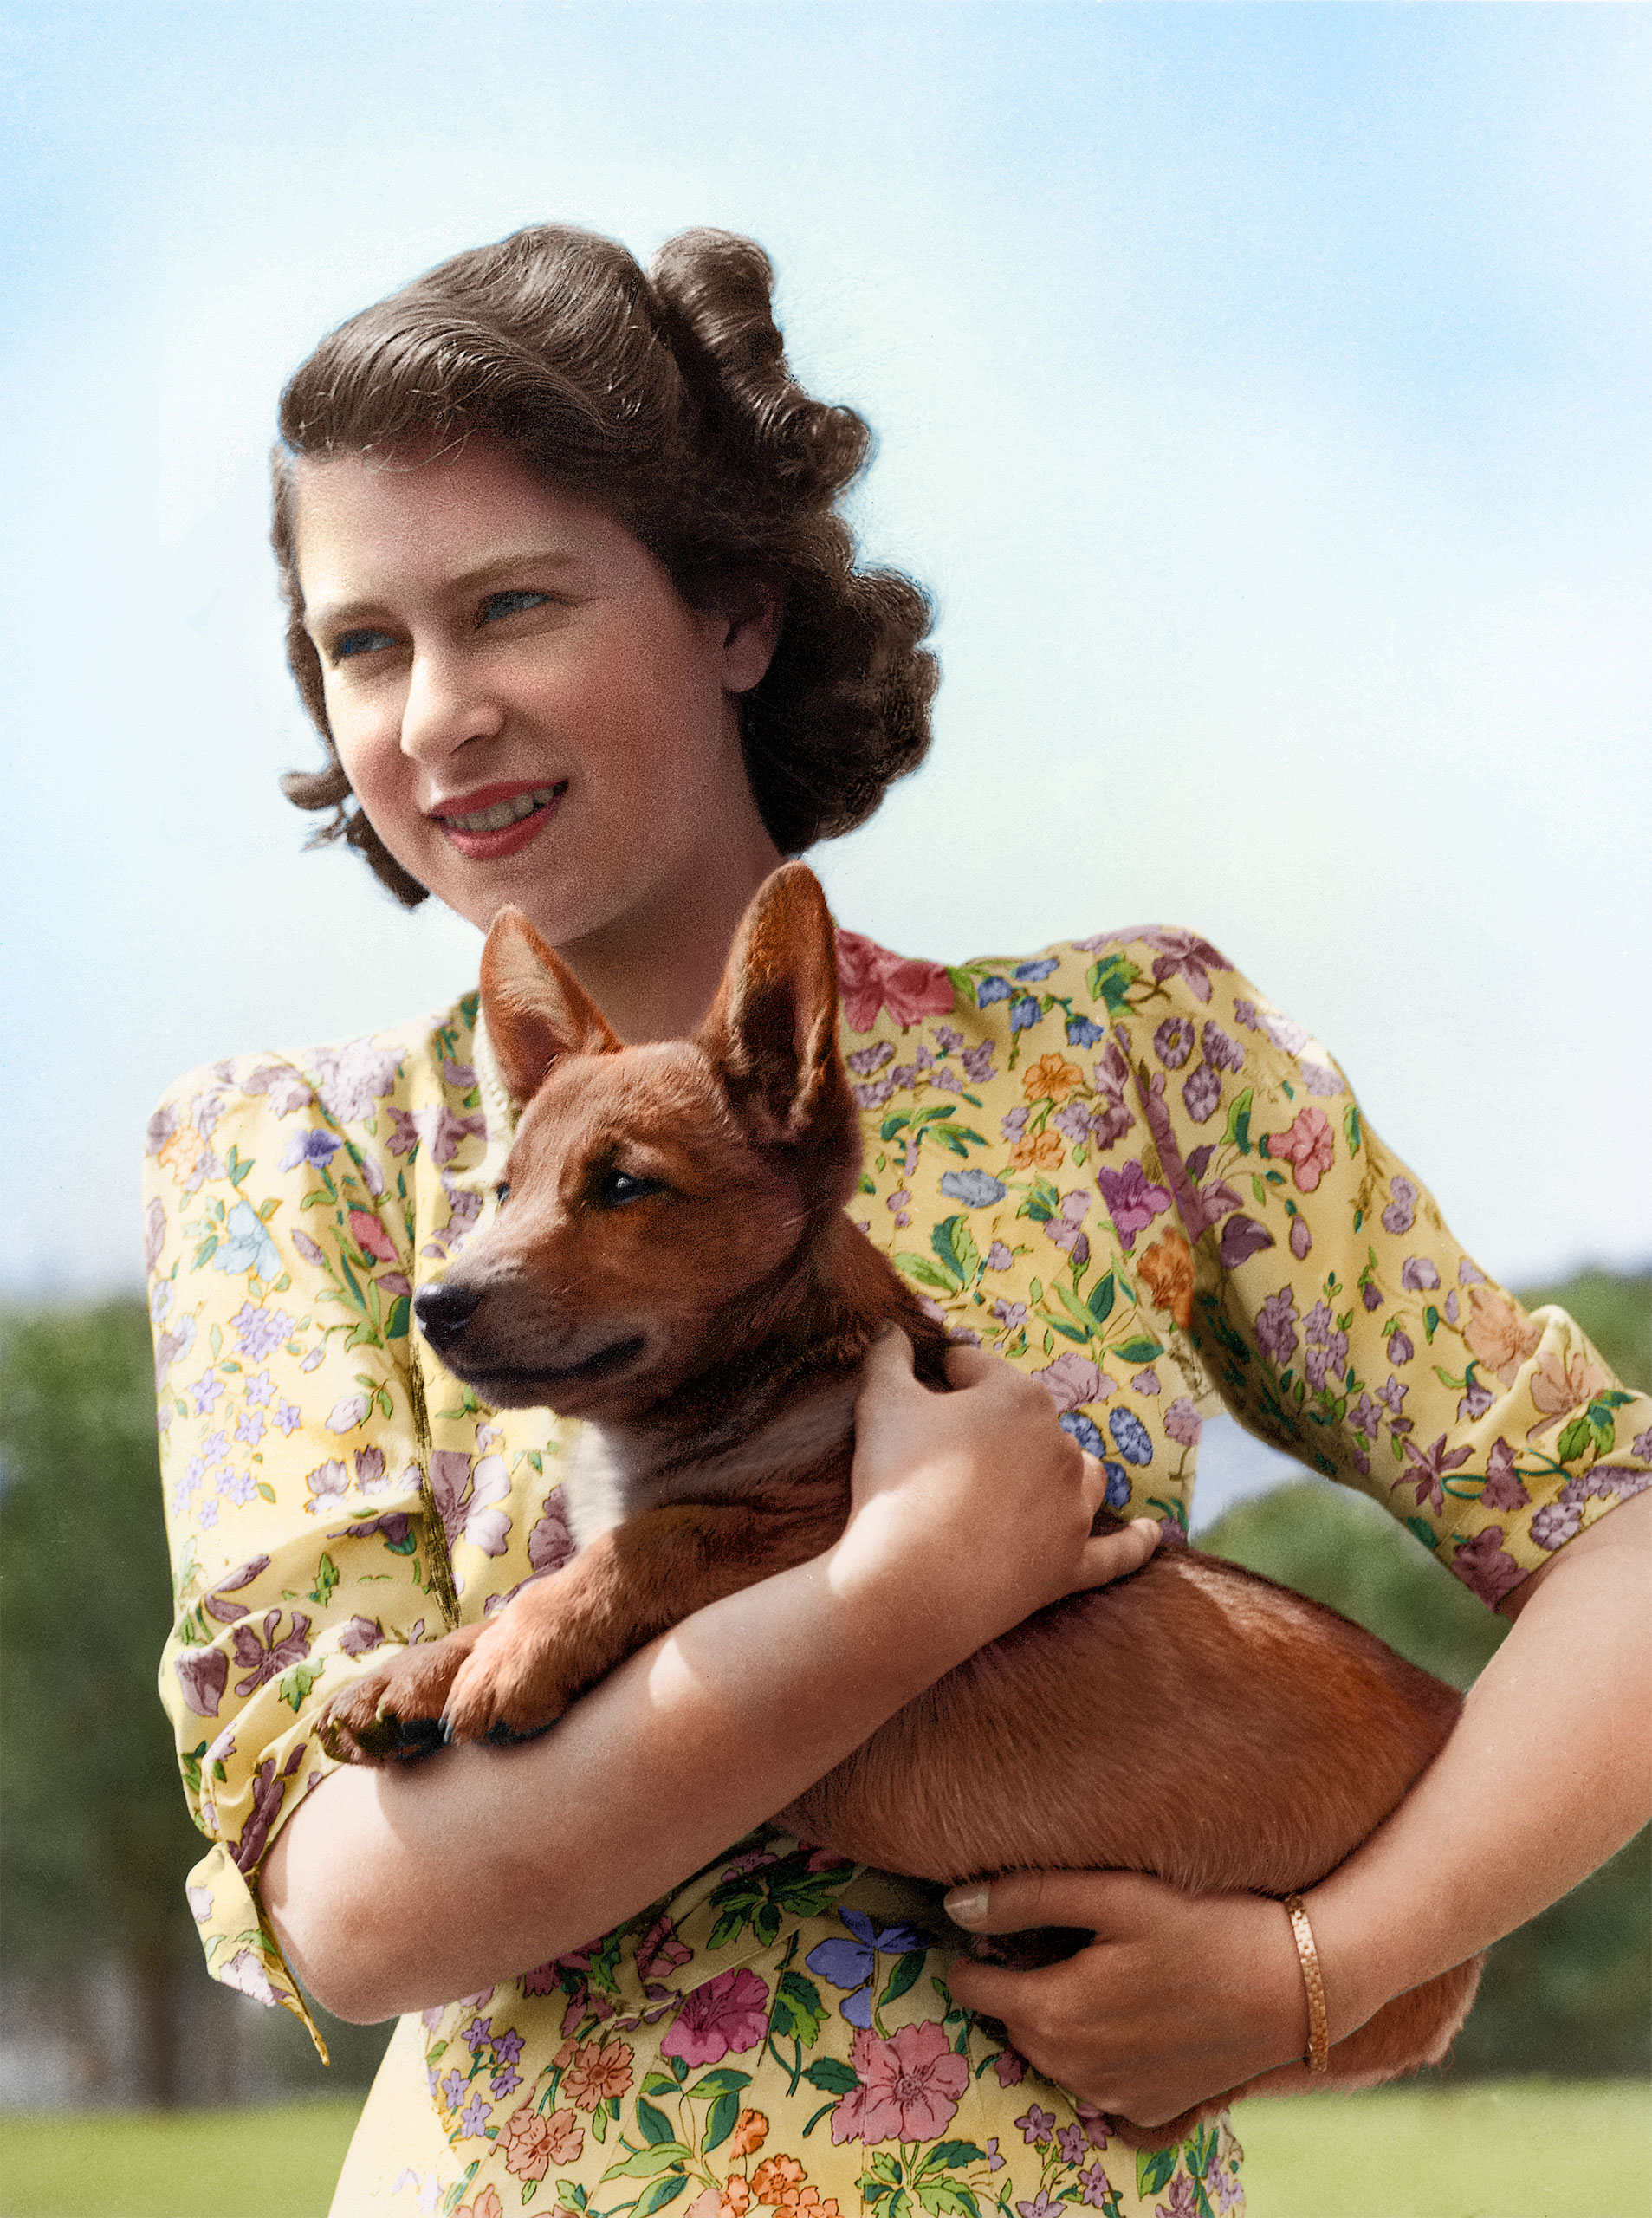 Princess Elizabeth holding Sue, a corgi pup, in the grounds of Windsor Castle, Berkshire, May 30, 1944.